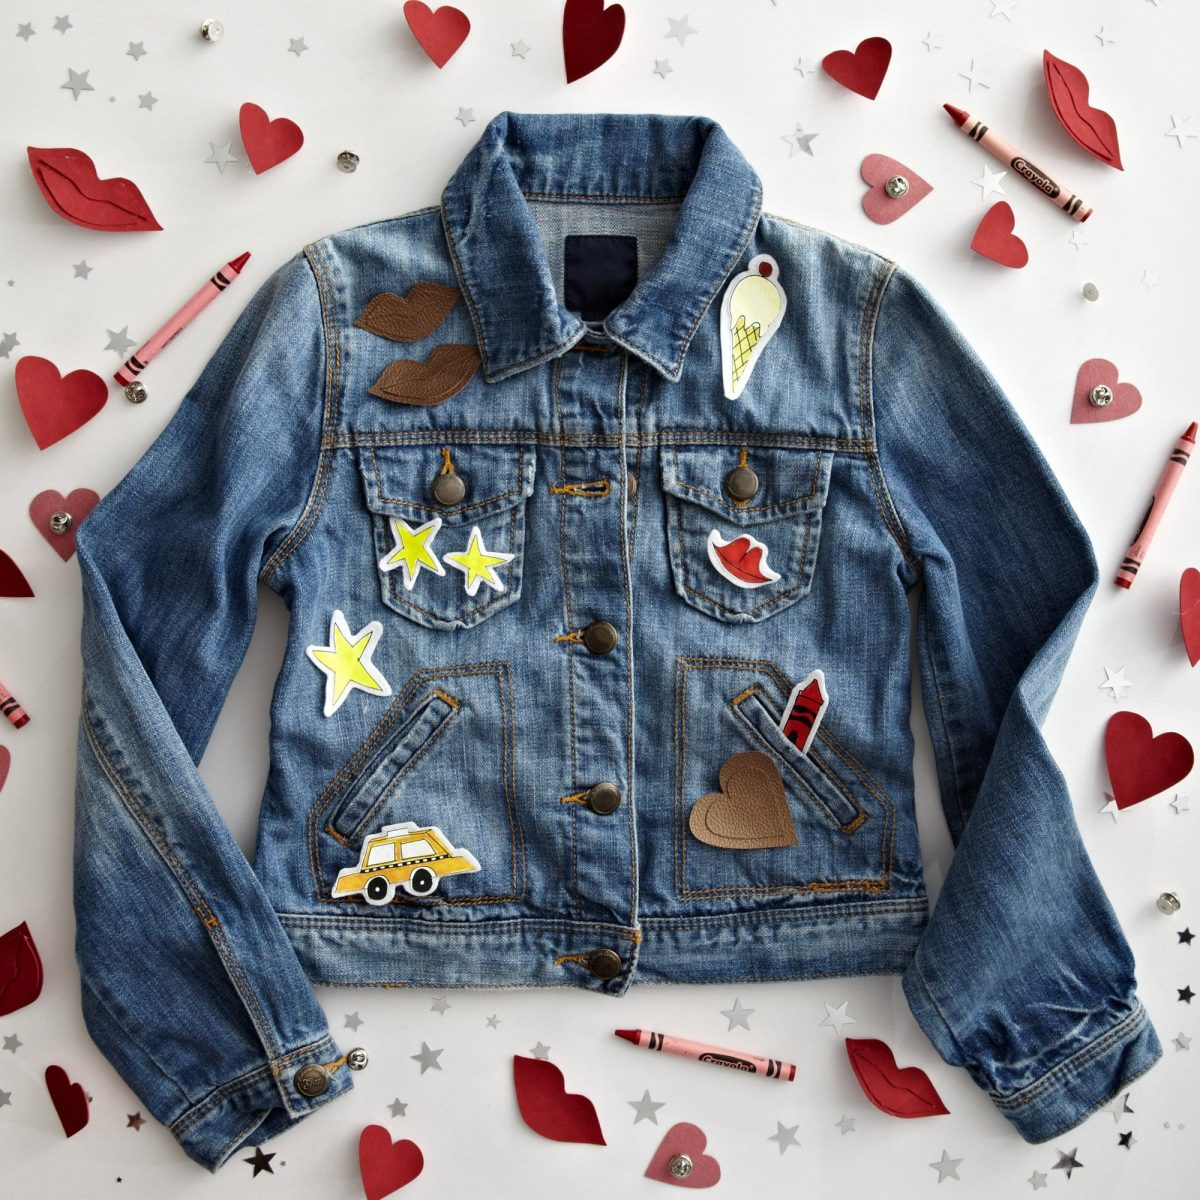 Darcy Miller Designs_Fall Fashion_DIY_Patches